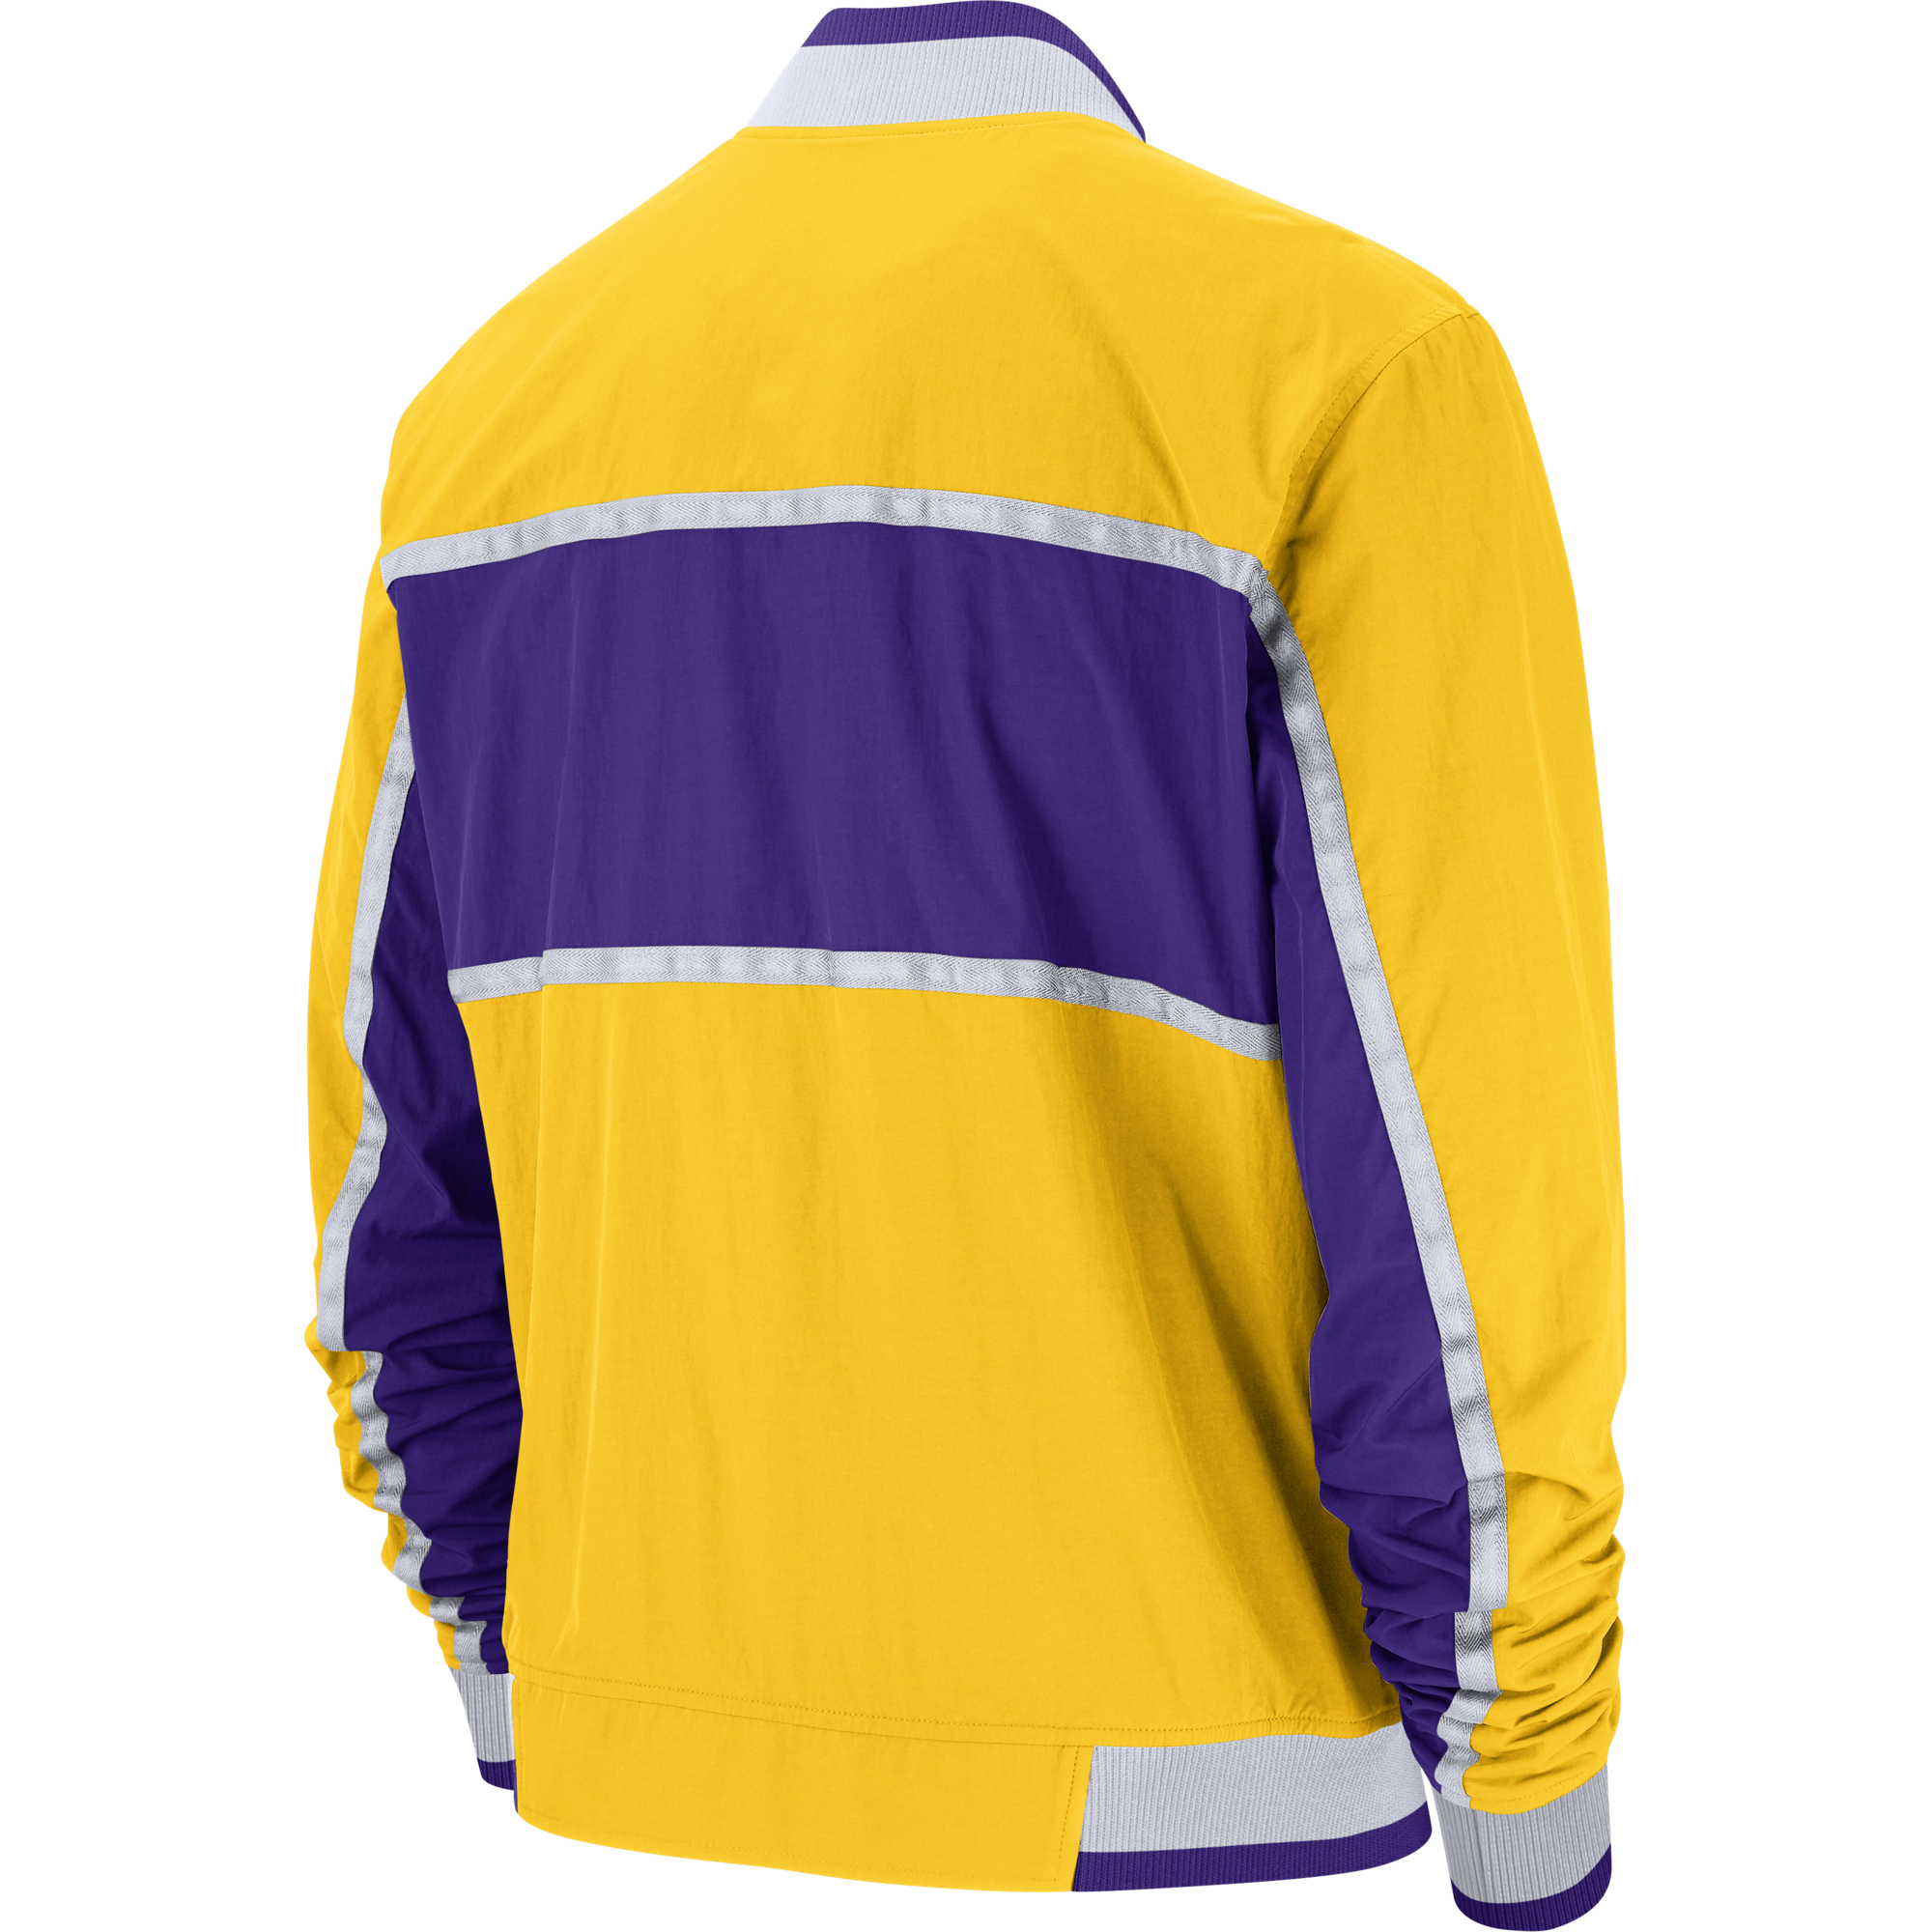 84d062a8c NIKE NBA LOS ANGELES LAKERS COURTSIDE ICON JACKET for £130.00 ...